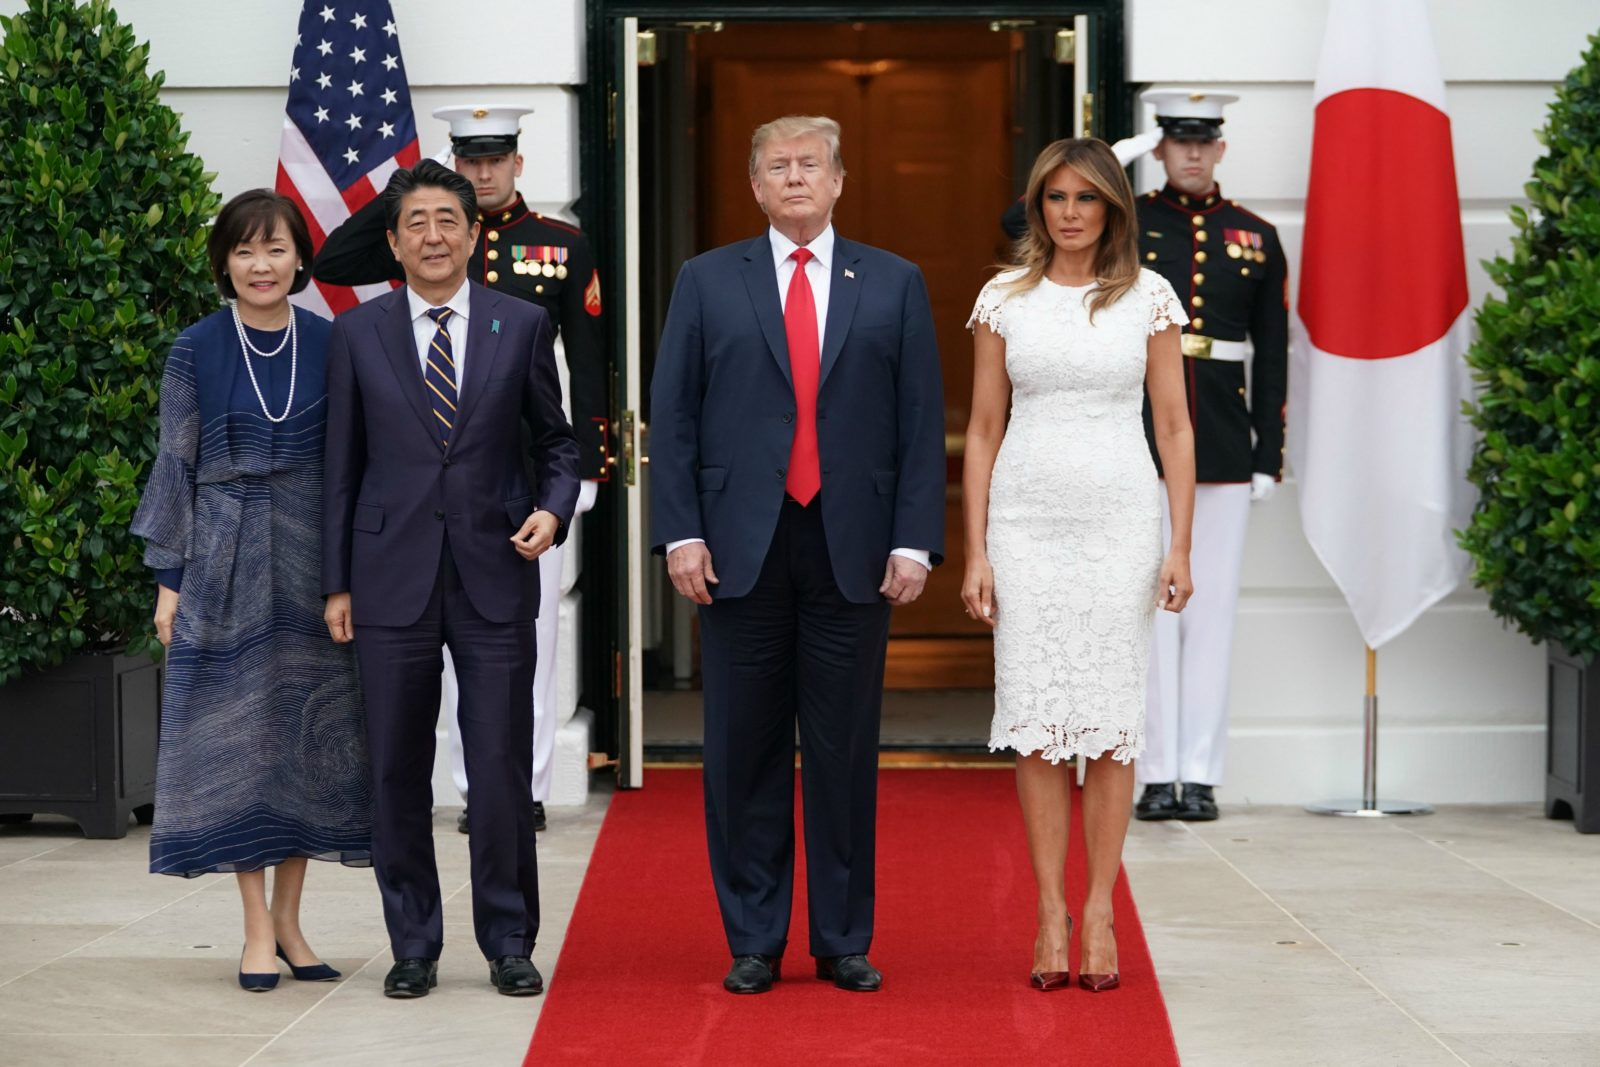 Melania Trump stole the show in white. Source: Getty.